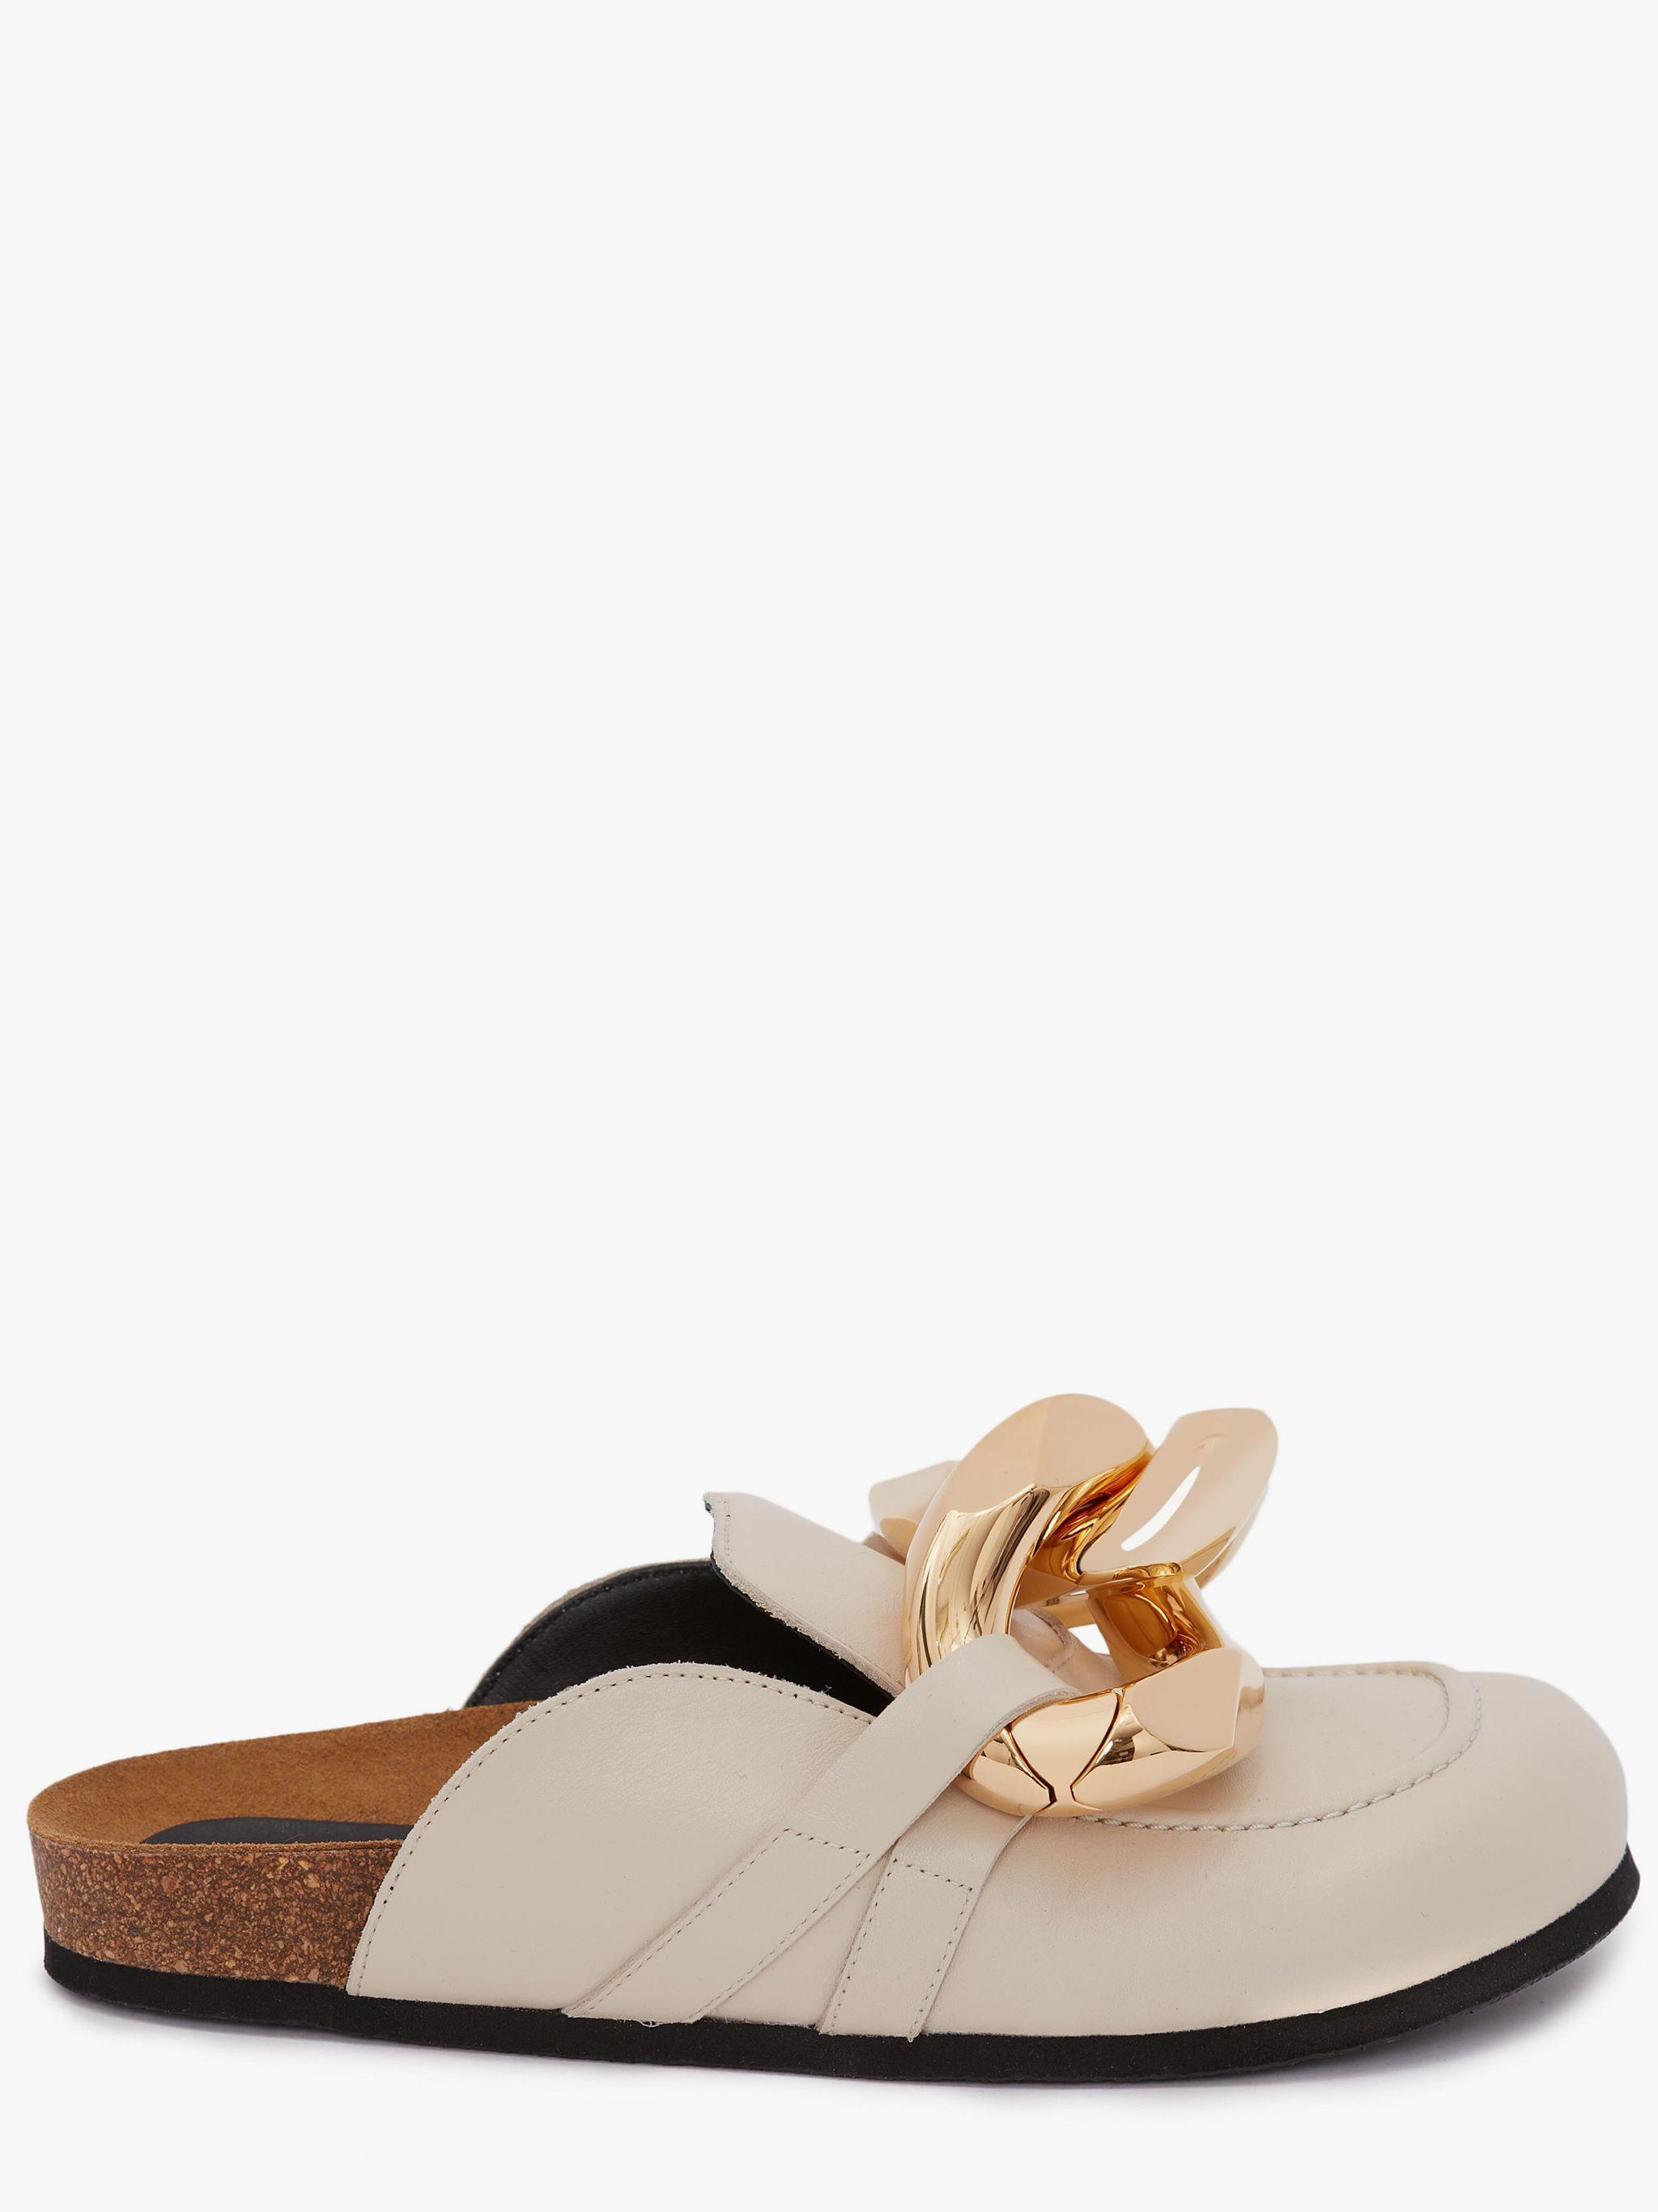 WOMEN'S CHAIN LOAFER